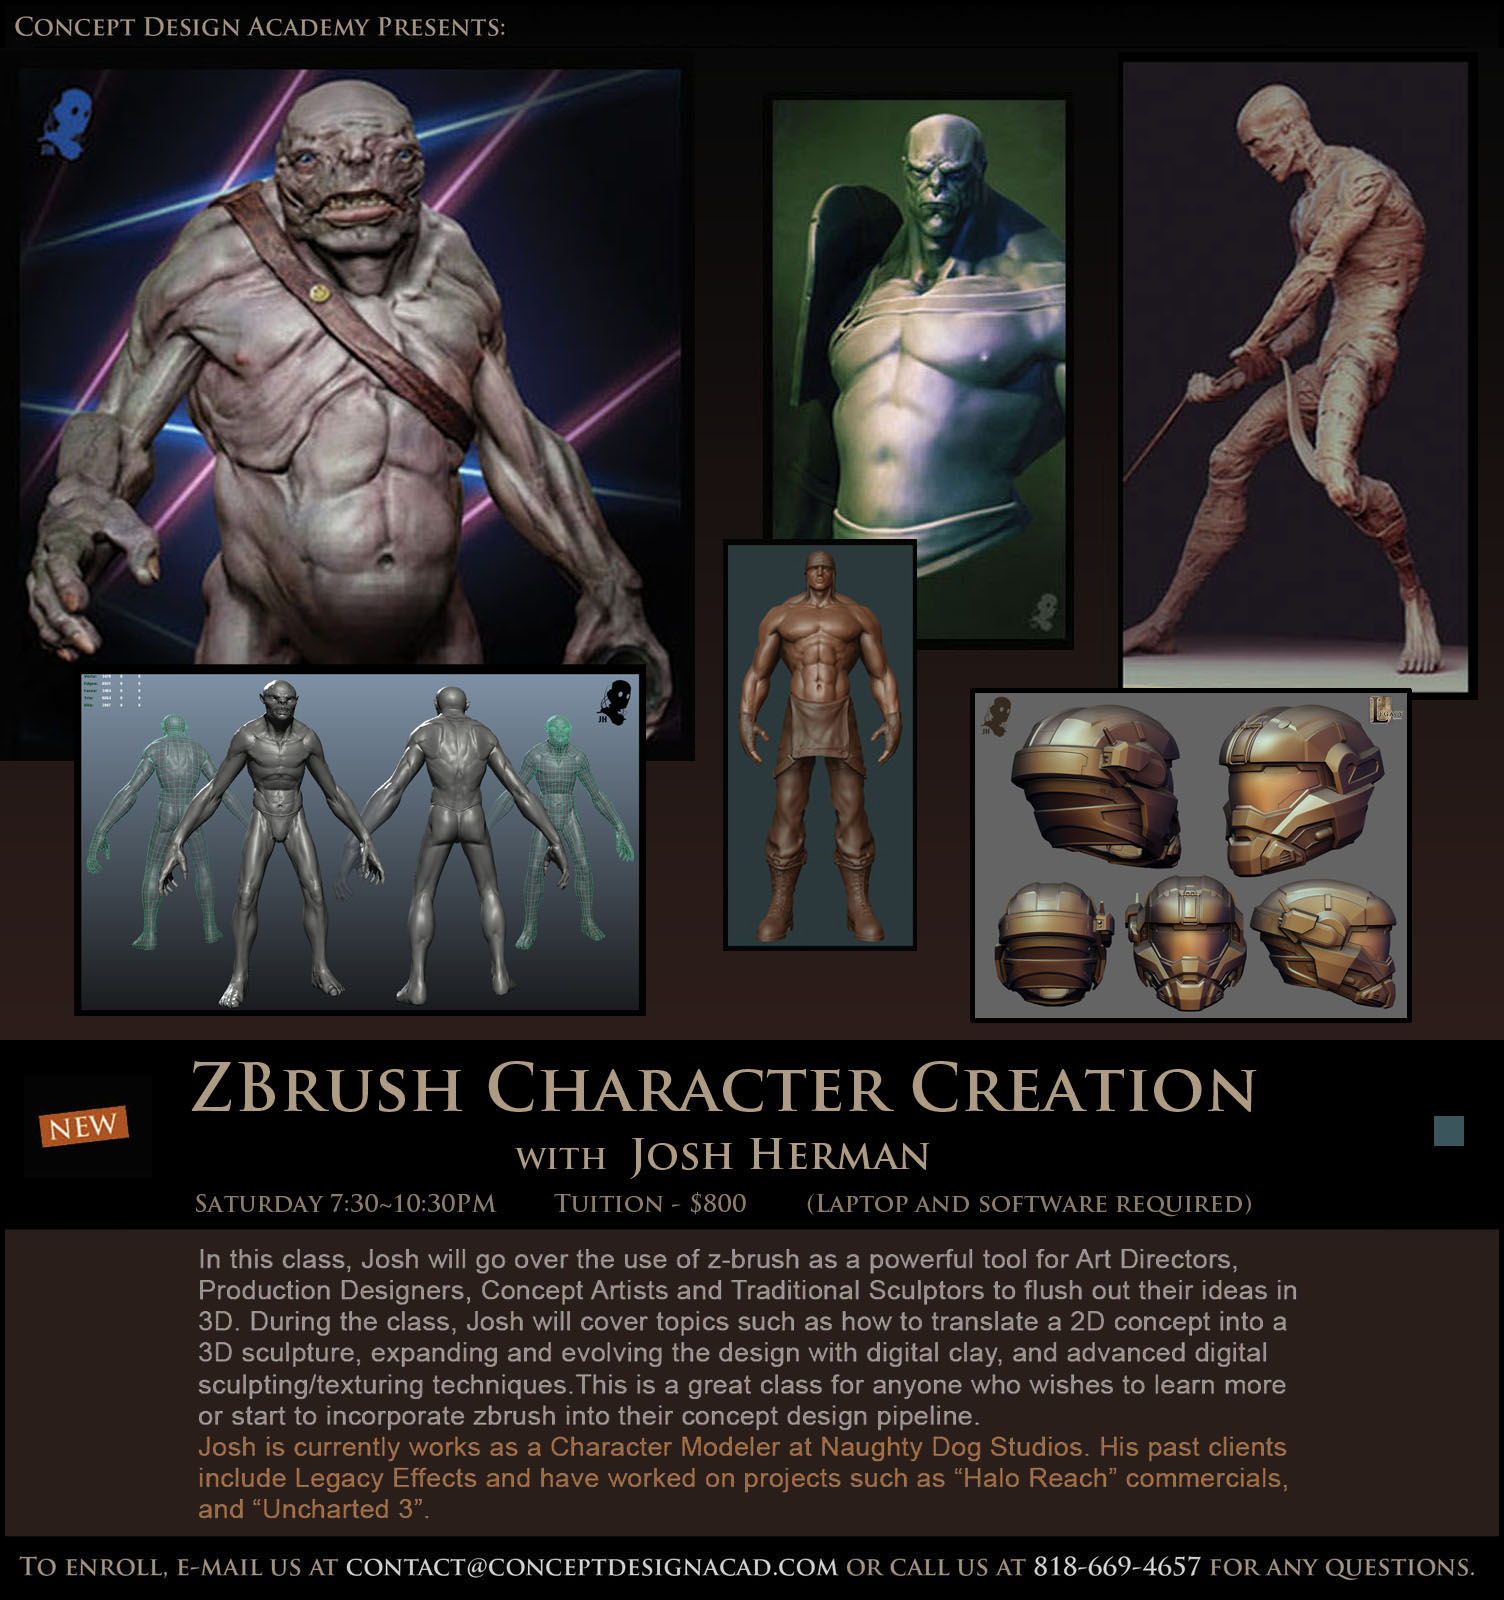 Character Design Zbrush Course : Concept design academy quot zbrush character creation with